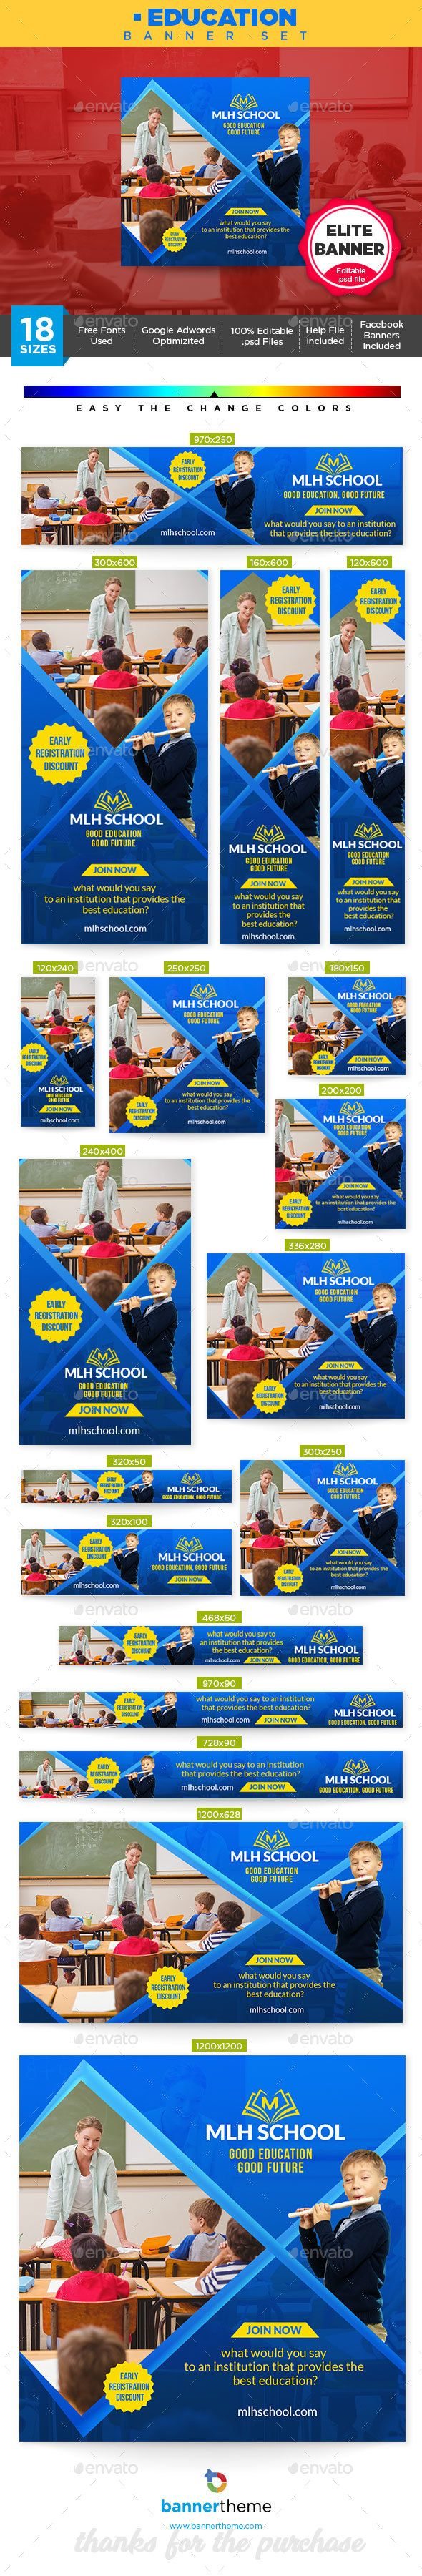 #Education Banner – #Banners & Ads #Web Elements